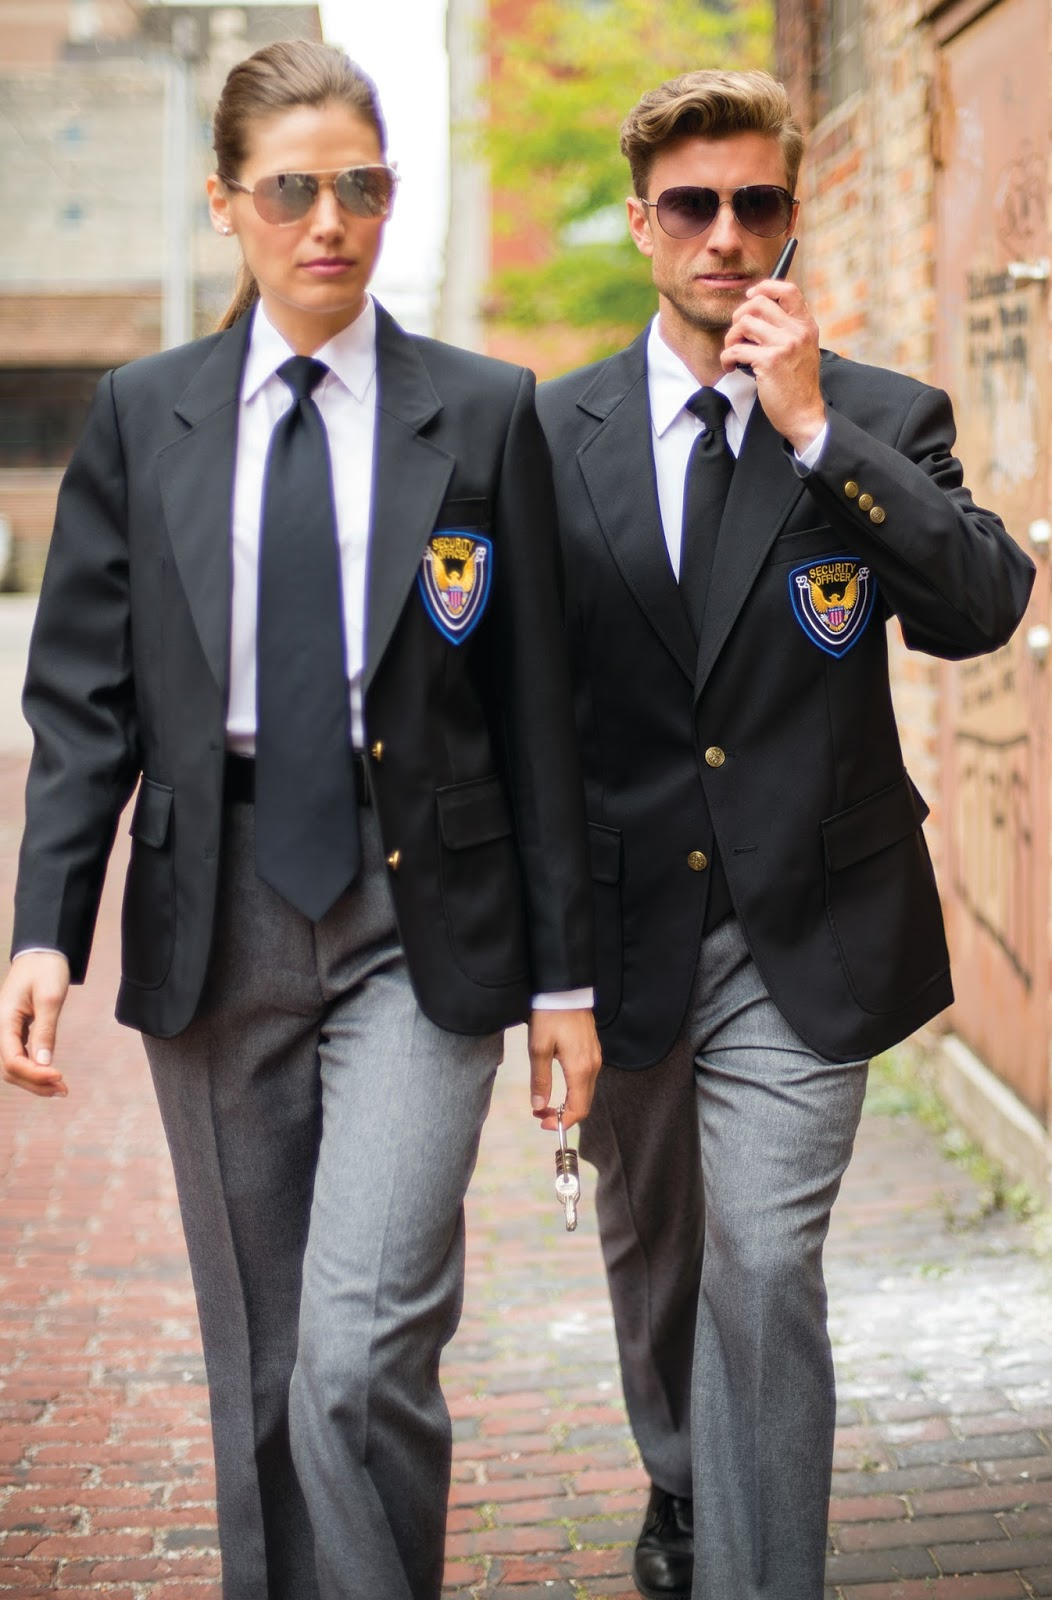 30c0c8ae00c Do Uniforms Make Sense  Why do they wear uniforms you ask  Well first and  foremost